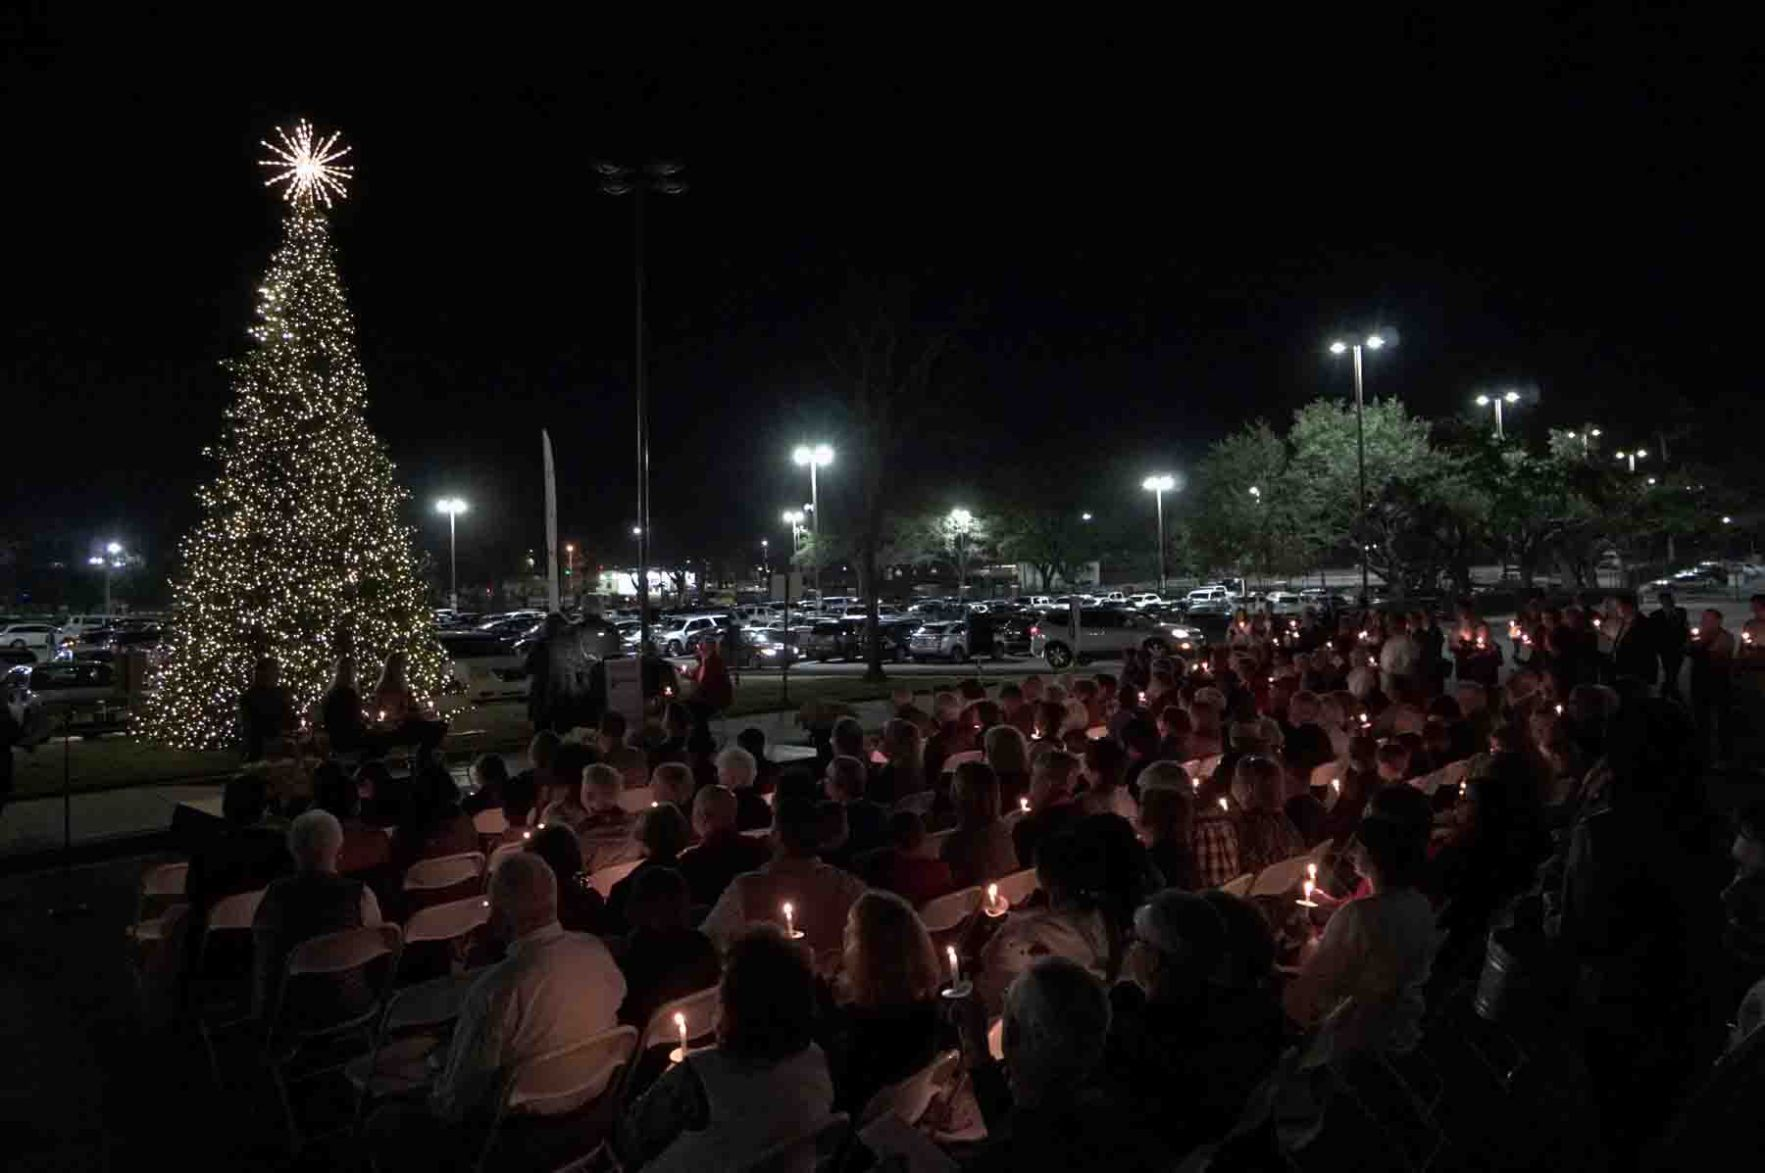 Phoebe Putney Health System Conducts Another Lights Of Love